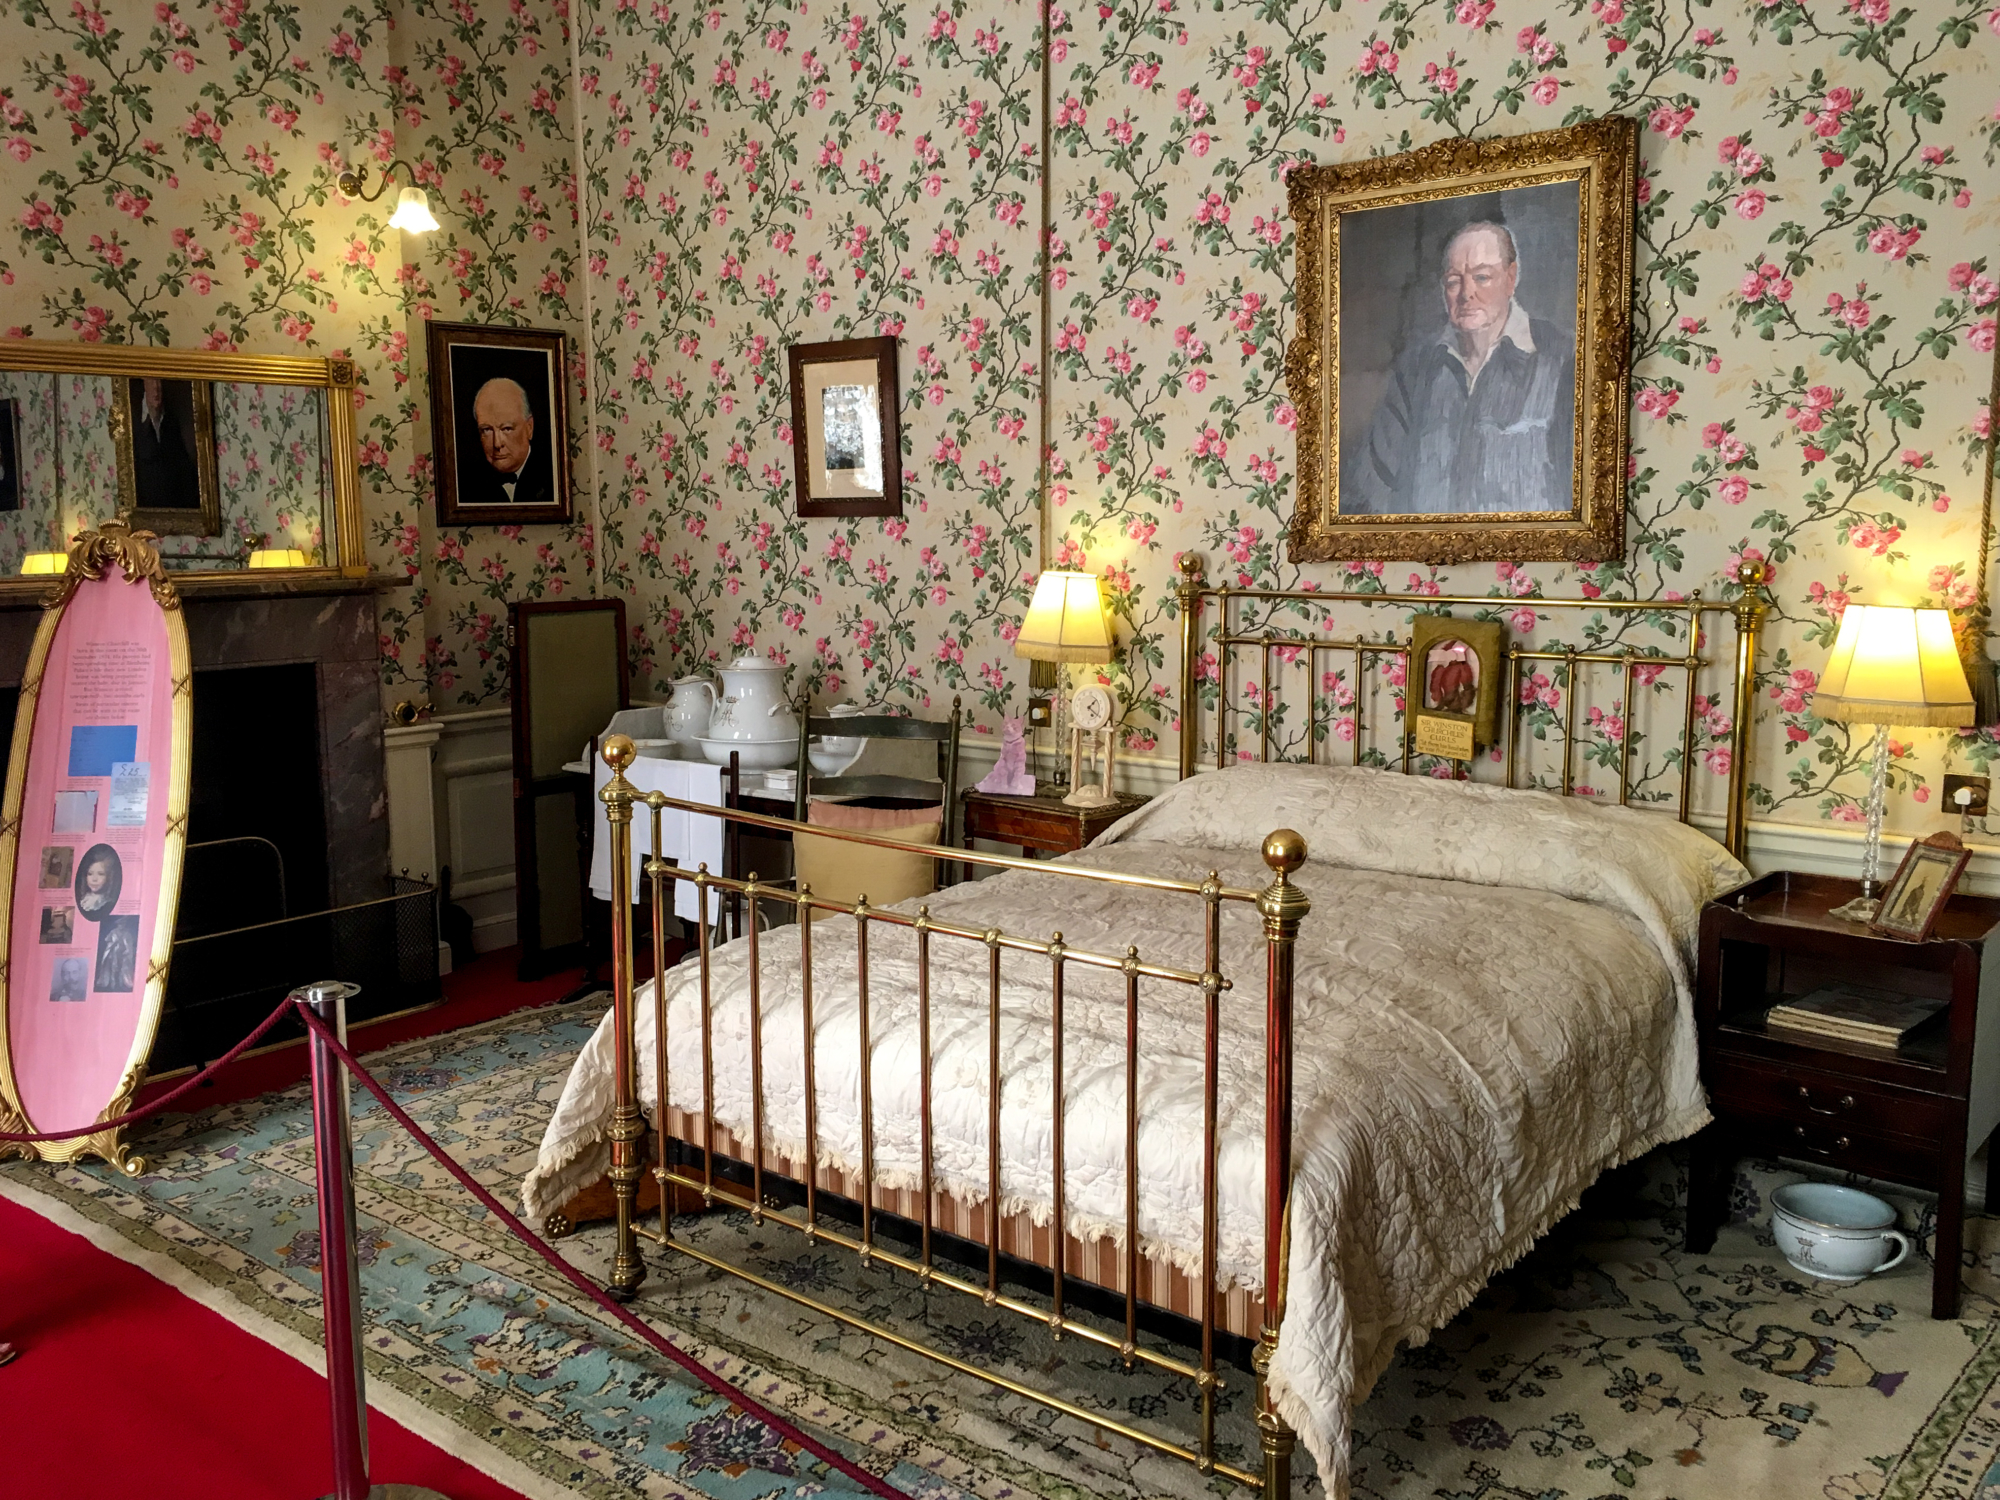 Sir Winston Churchill's Birth Room at Blenheim Palace